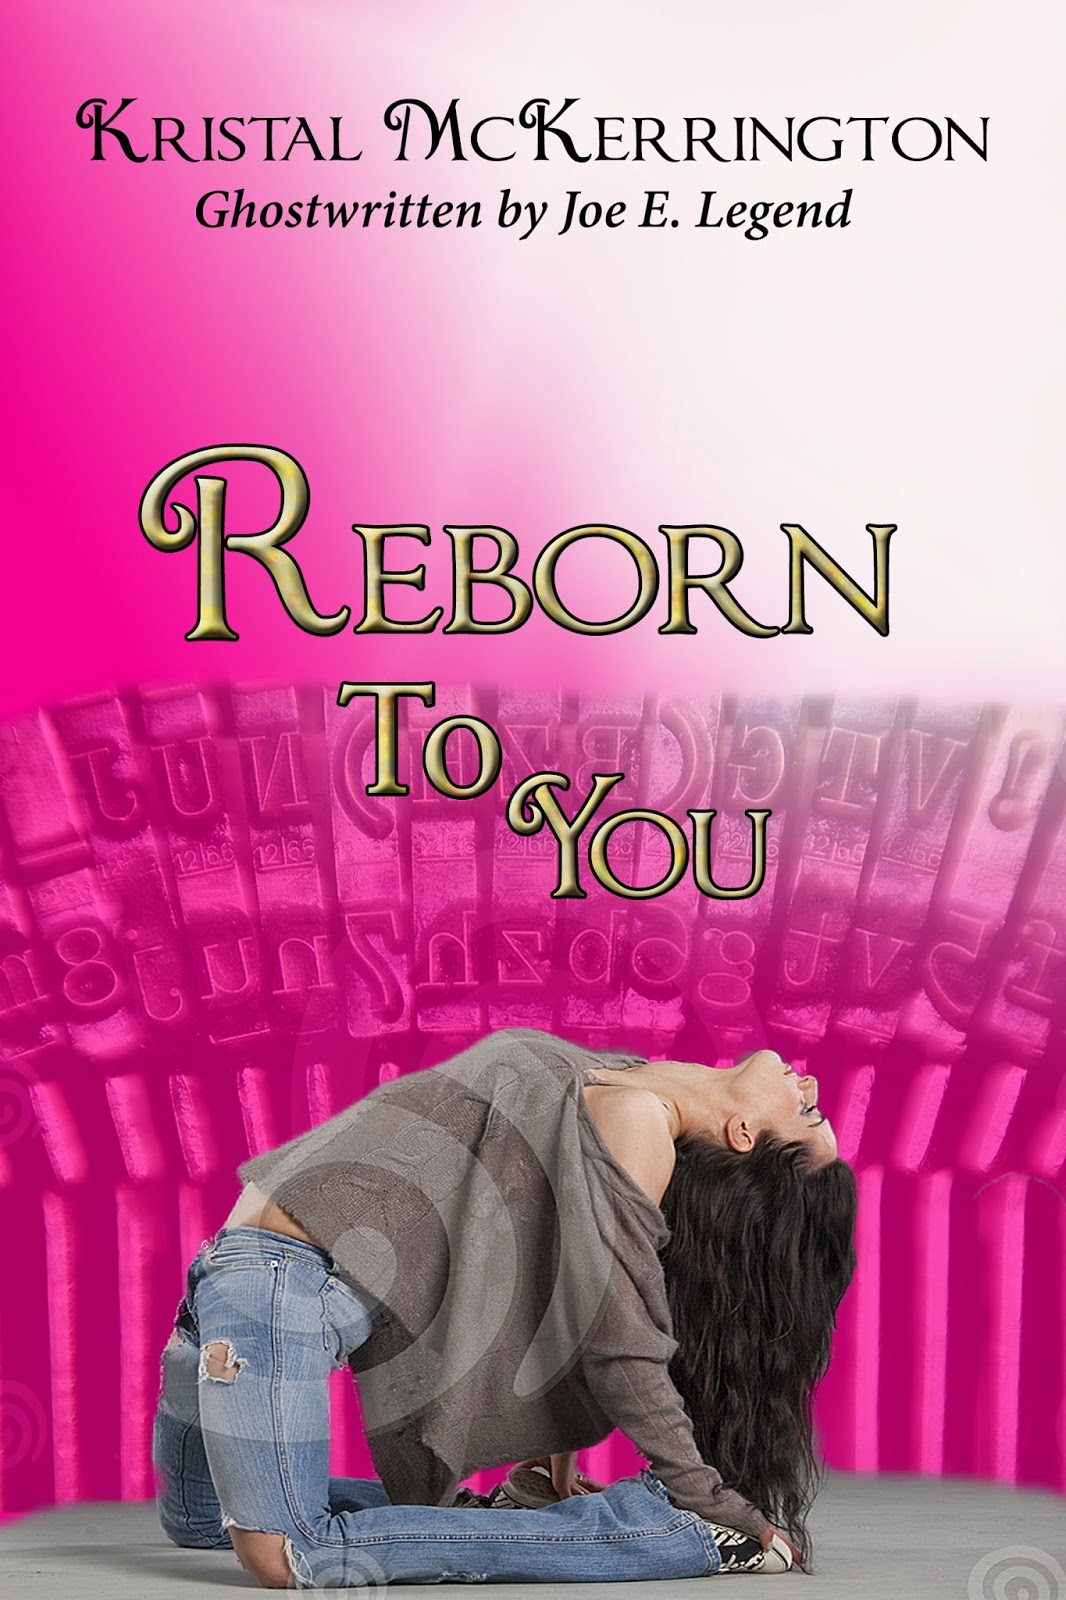 http://www.amazon.com/Reborn-You-Kristal-McKerrington-ebook/dp/B00GNE12AO/ref=sr_1_6?s=books&ie=UTF8&qid=1395790317&sr=1-6&keywords=kristal+mckerrington